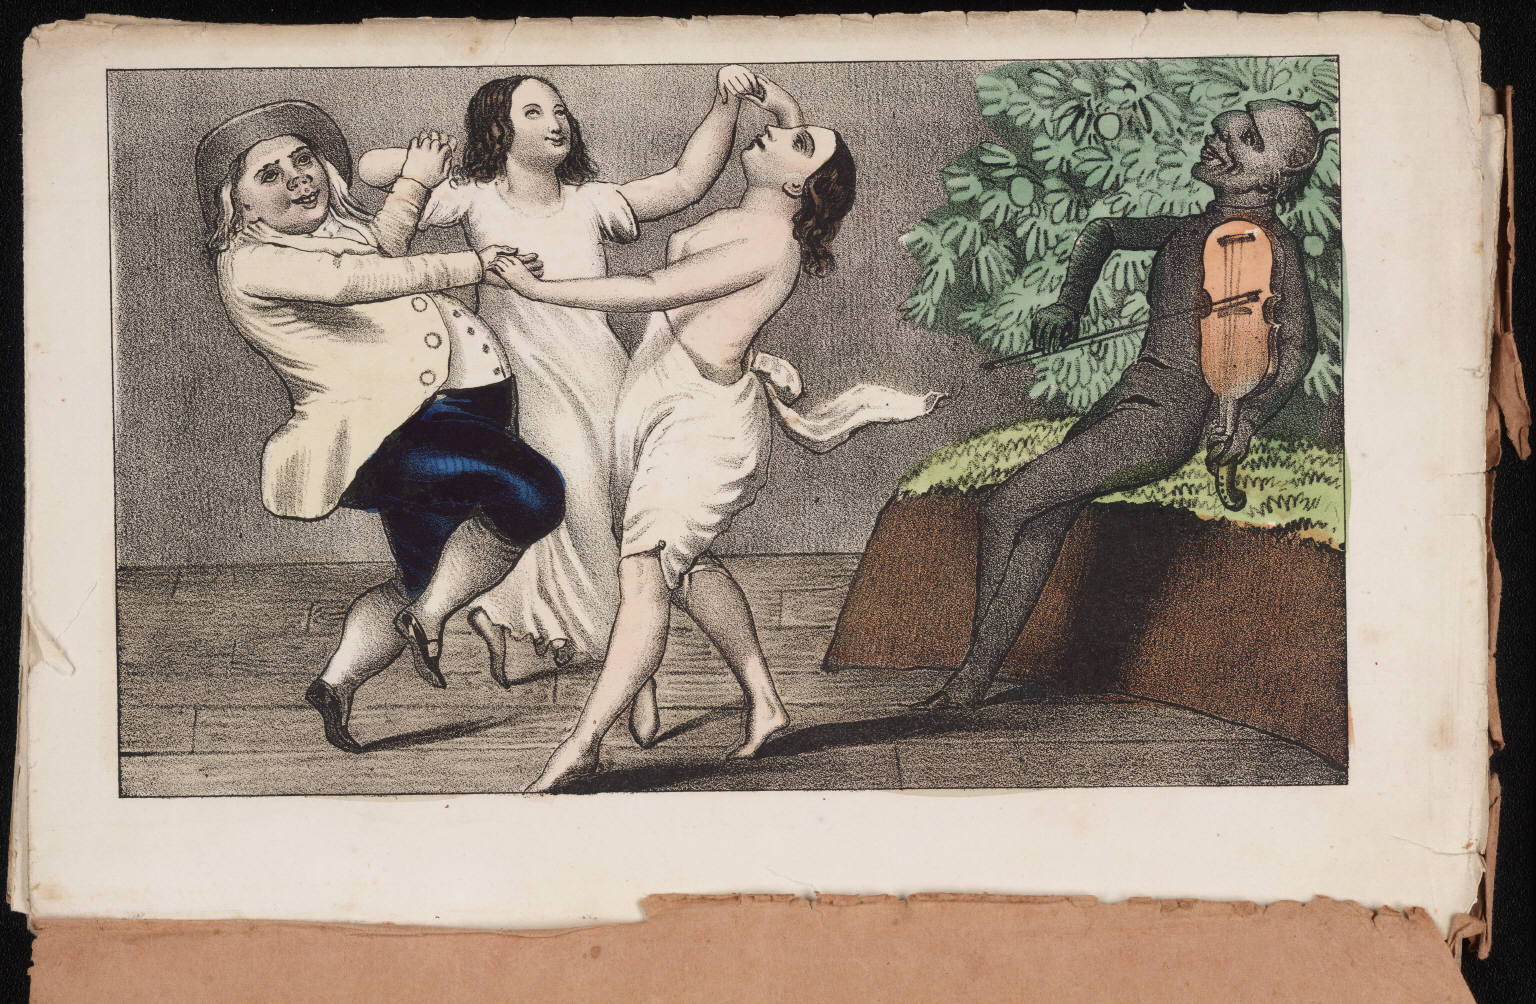 A_Mormon_and_his_wives_dancing_to_the_devil's_tune_1850.jpg